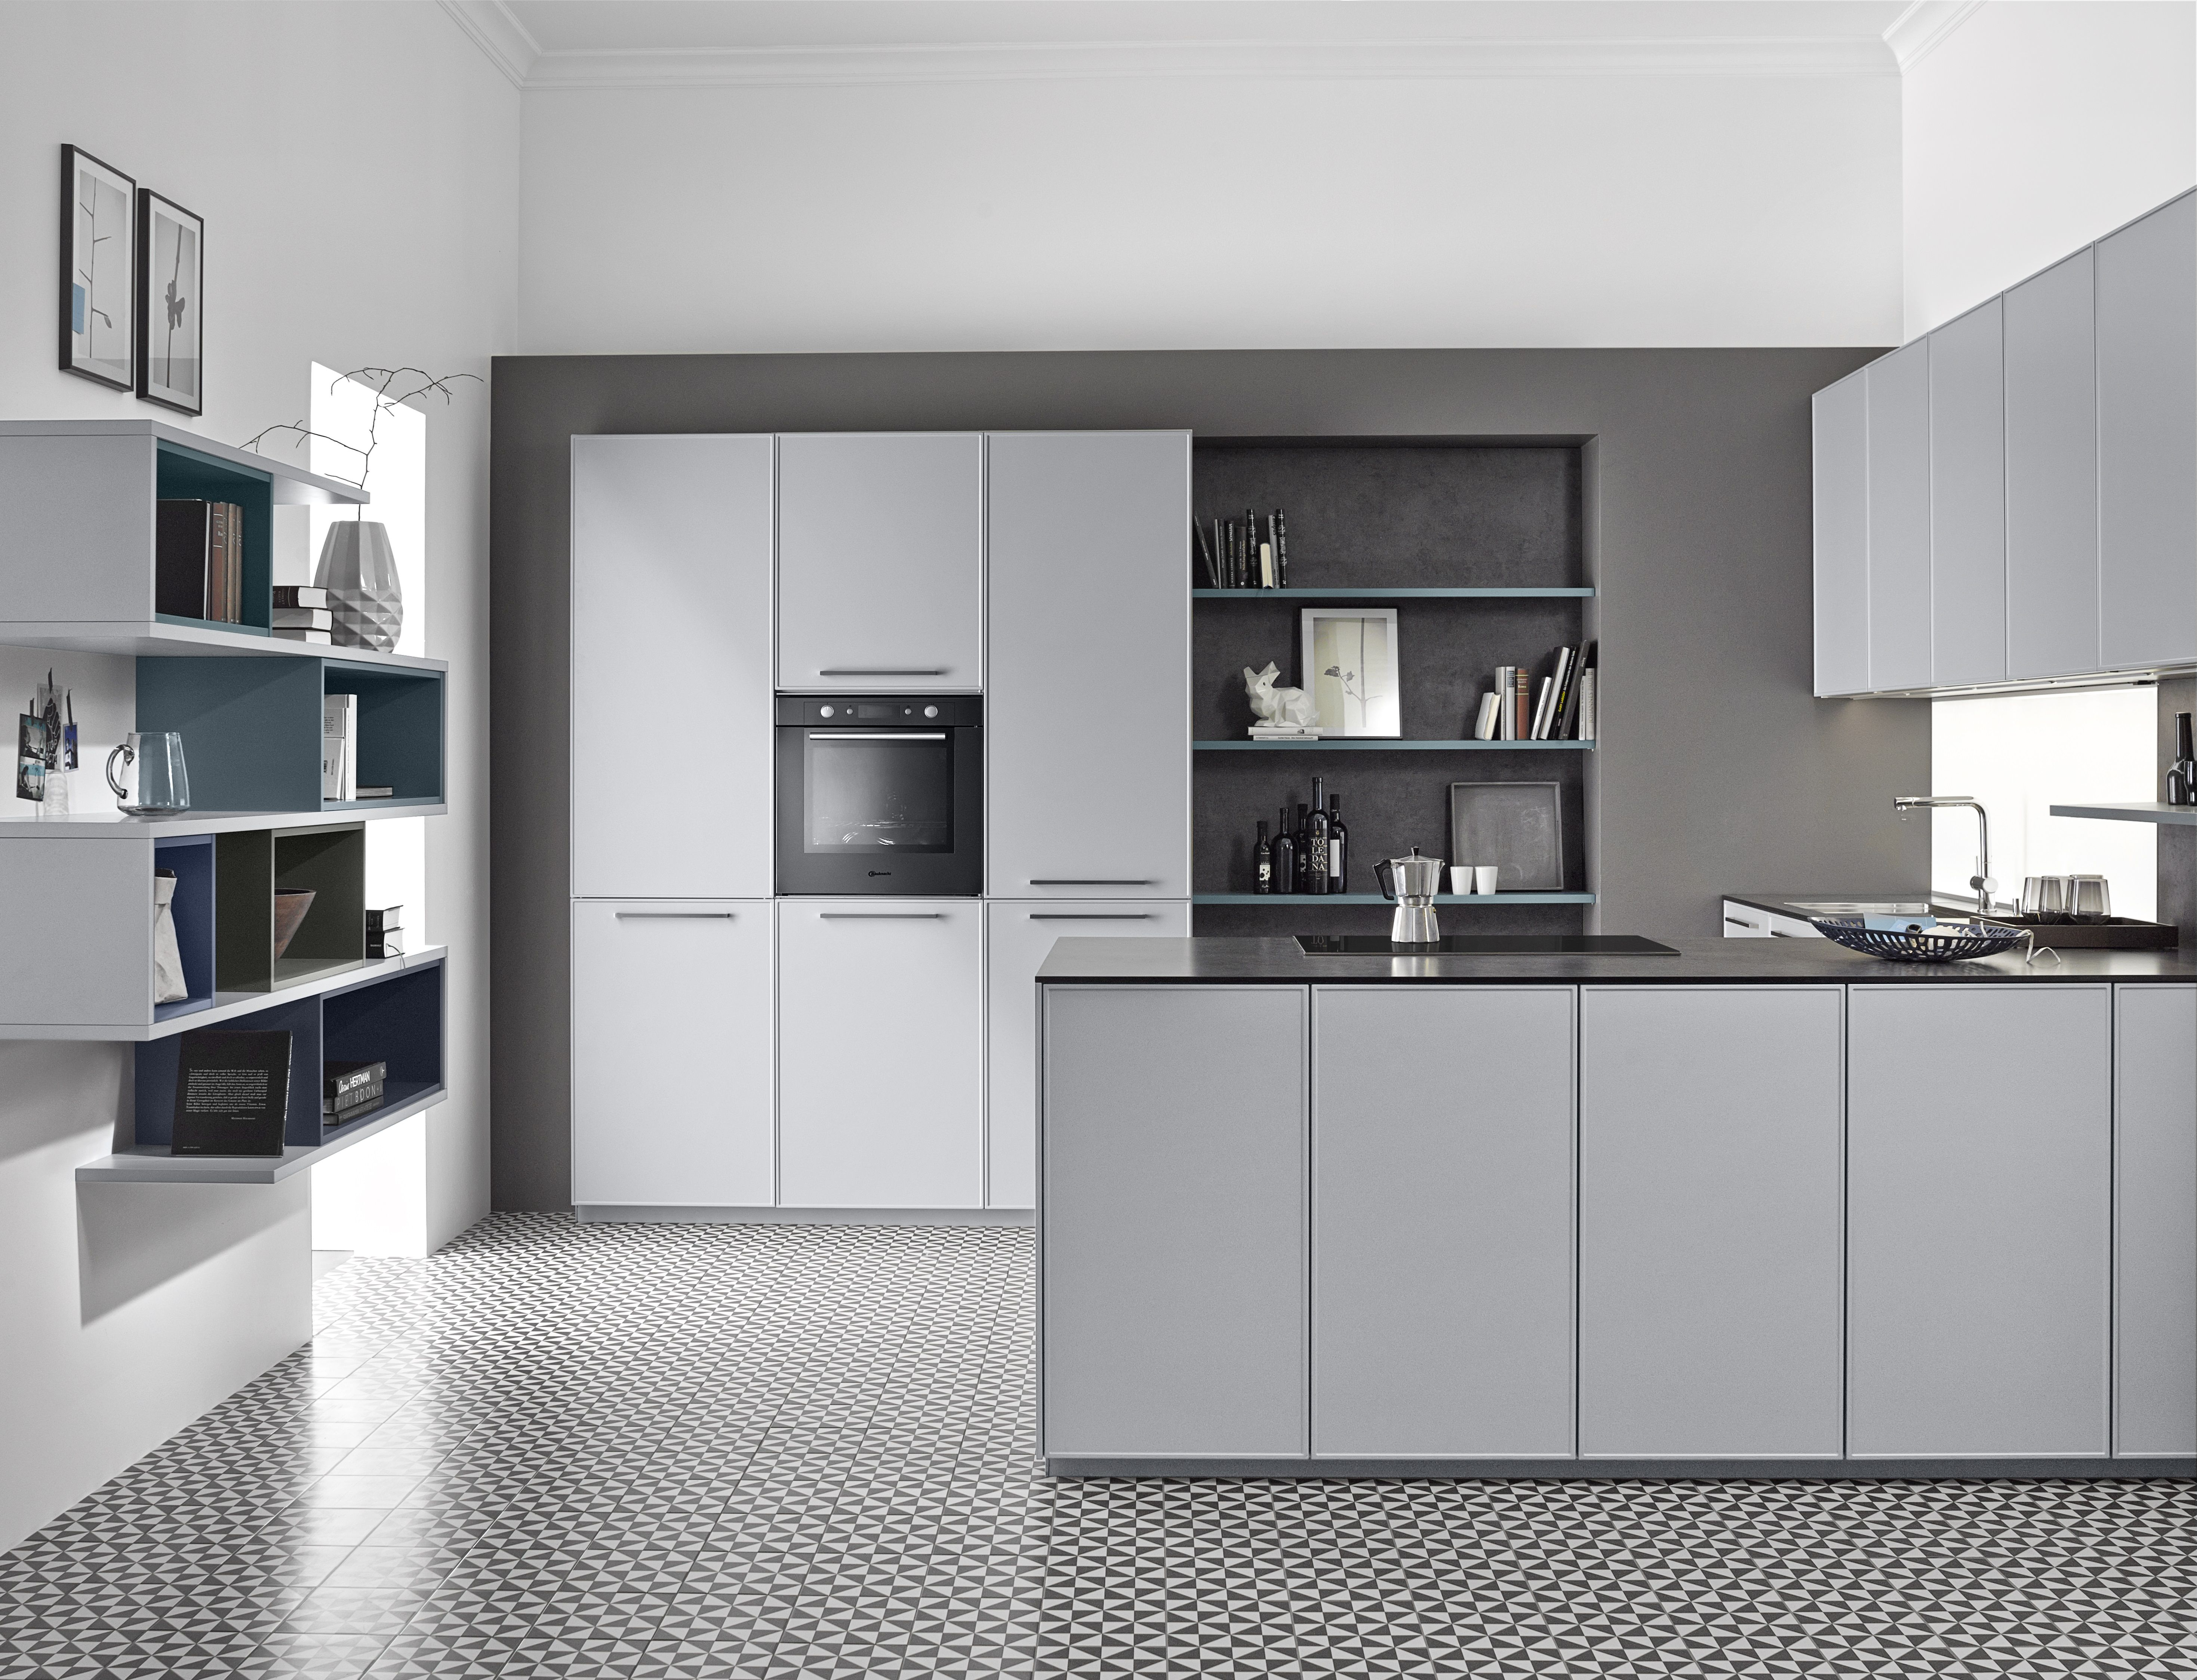 carisma lack papyrus grey. the new matrix 900 carcase height is